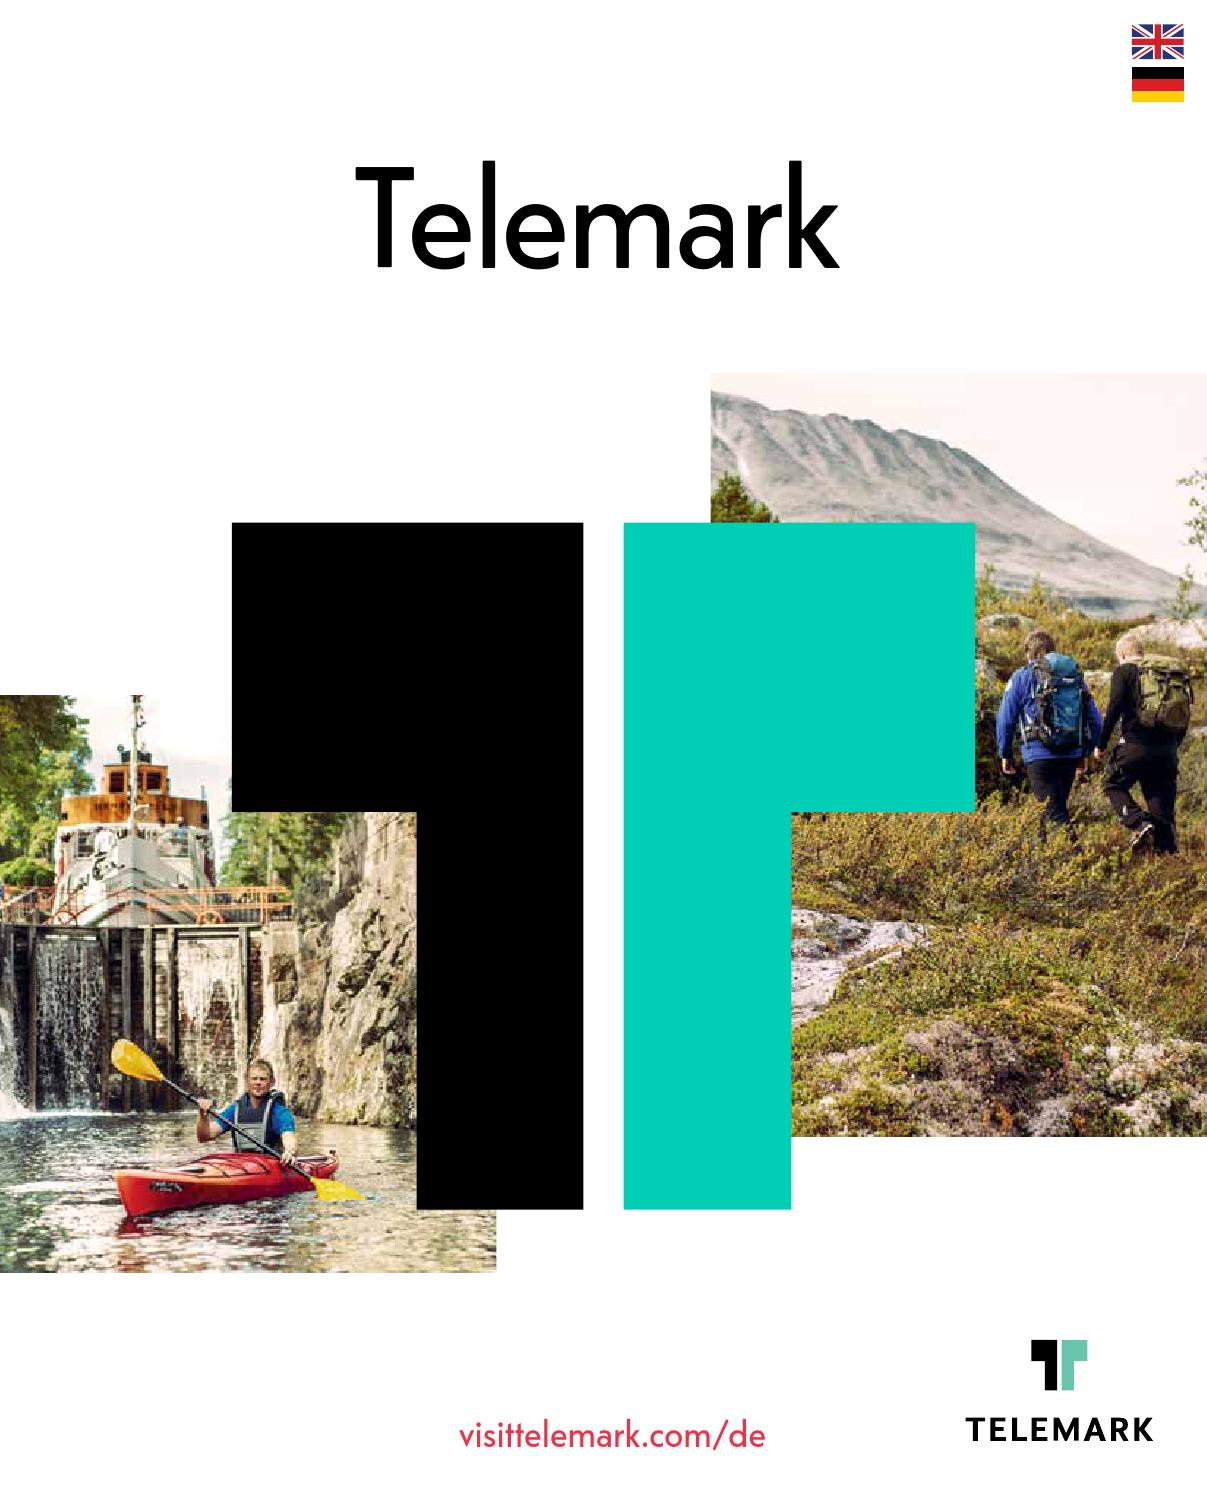 Dating telemark | Orciny Press